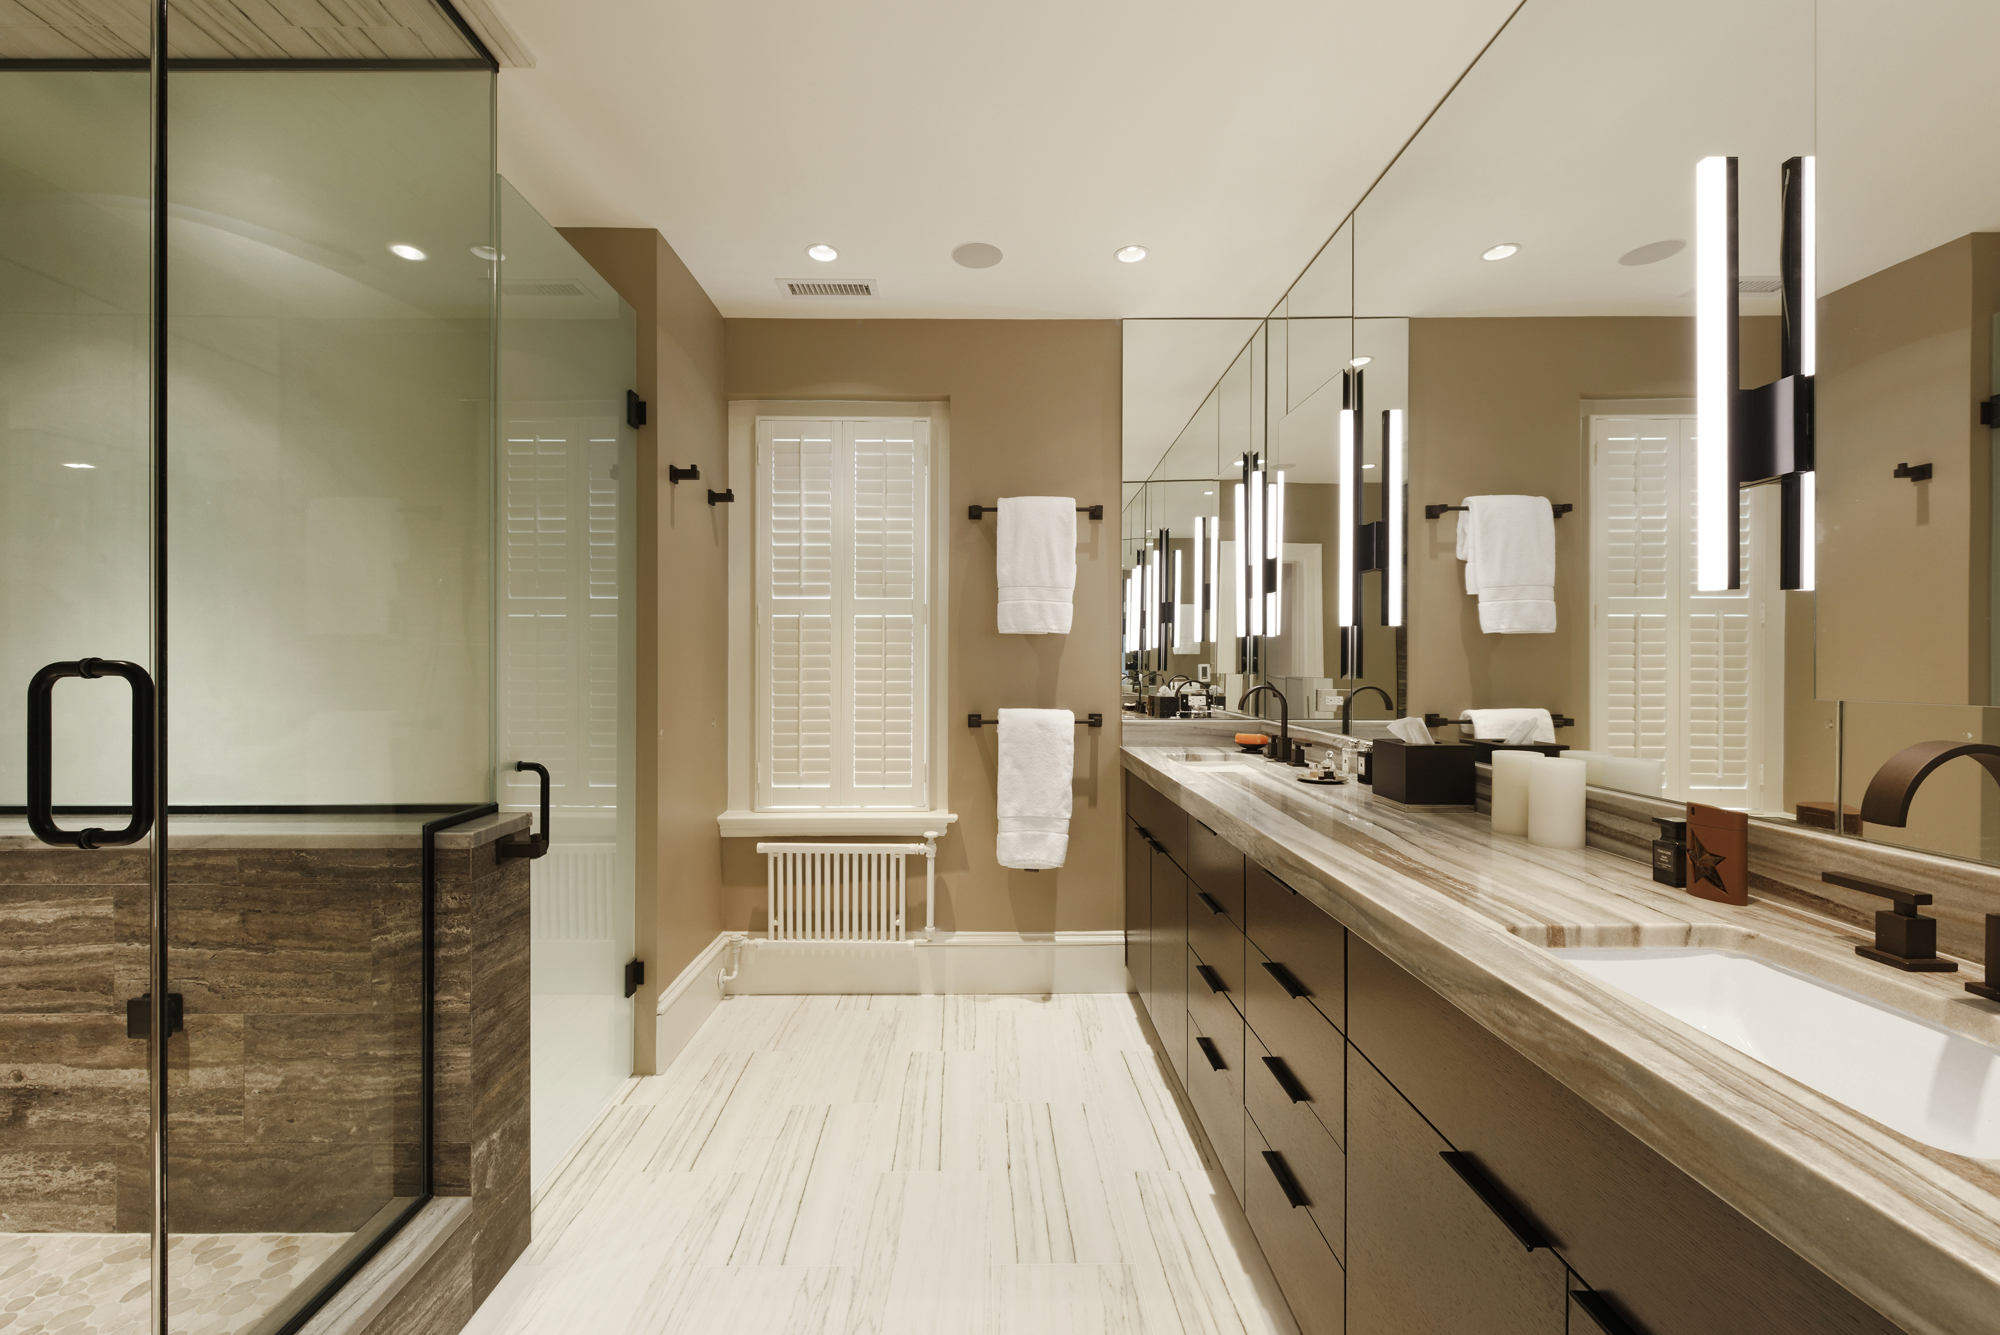 Washington DC Renovations Additions Remodels BOWA - Bathroom remodeling dc area